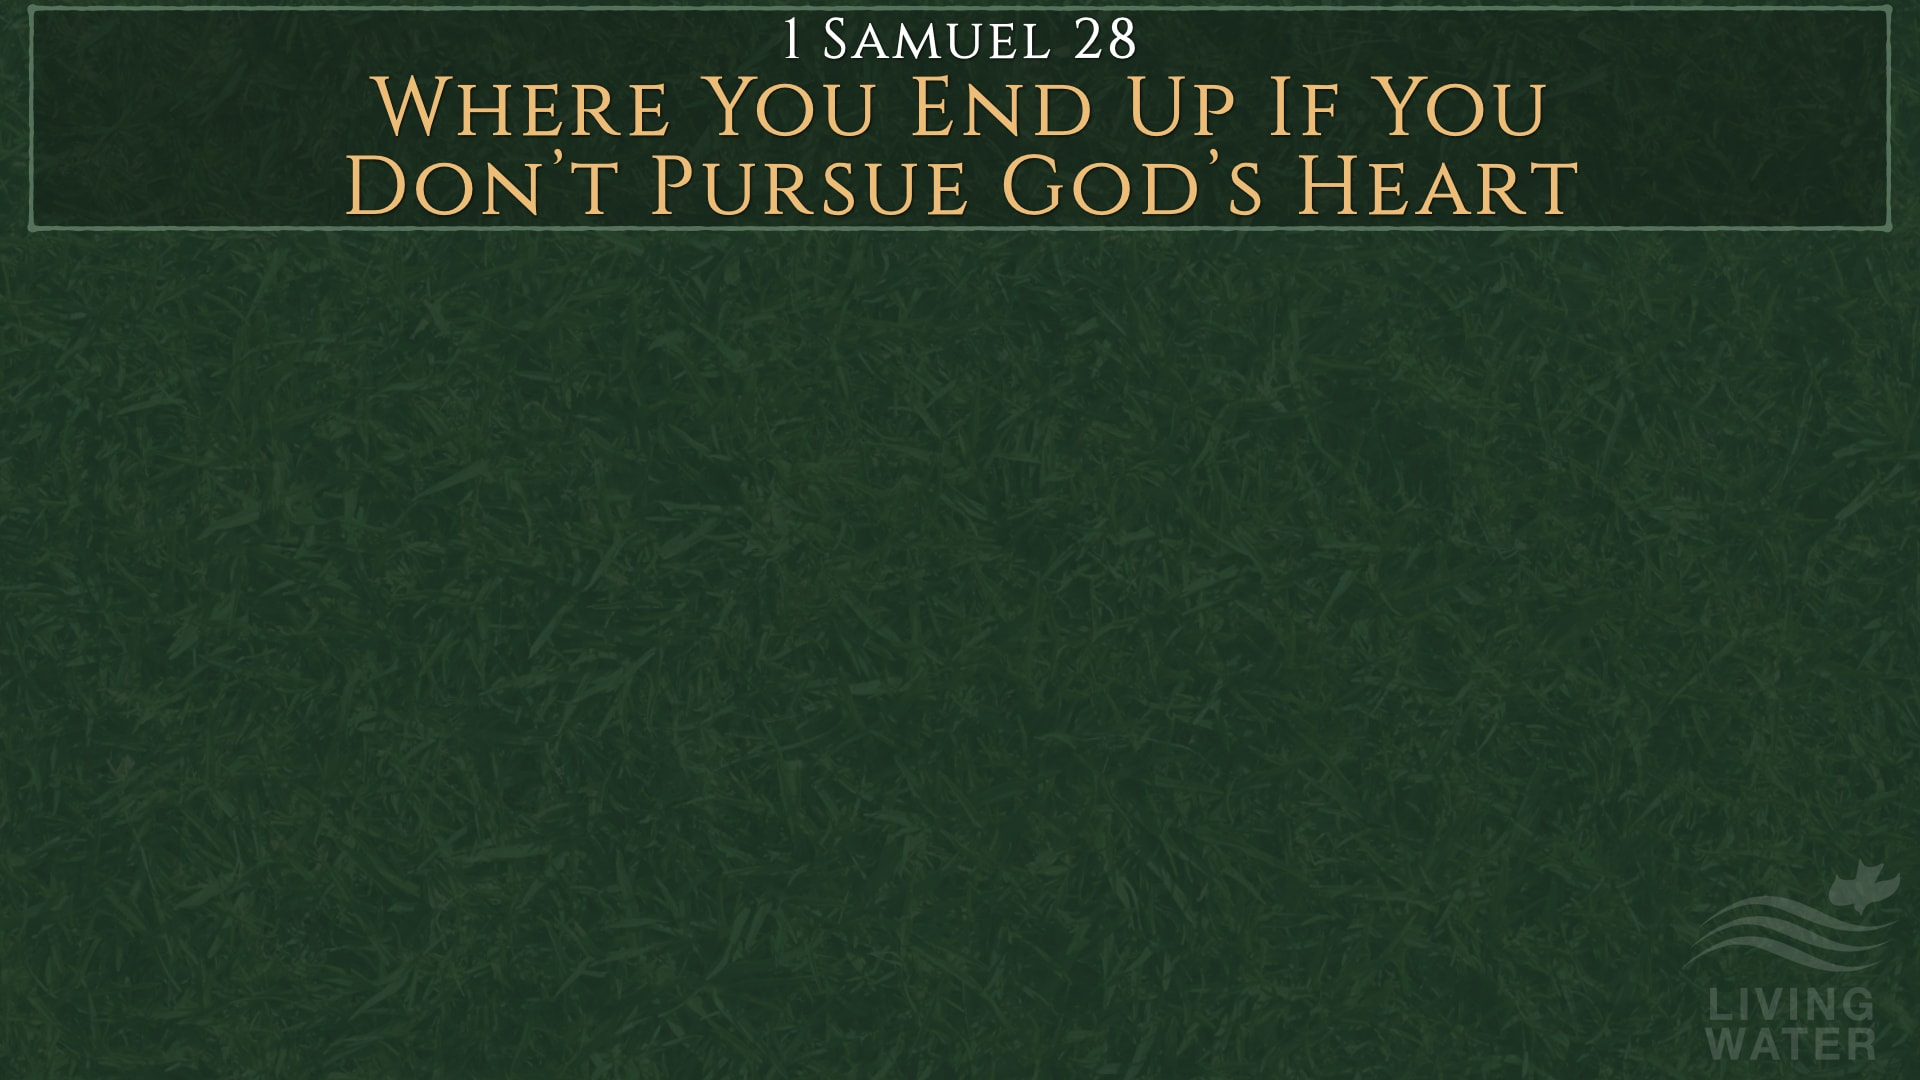 1 Samuel 28, Where You End Up If You Don't Pursue God's Heart